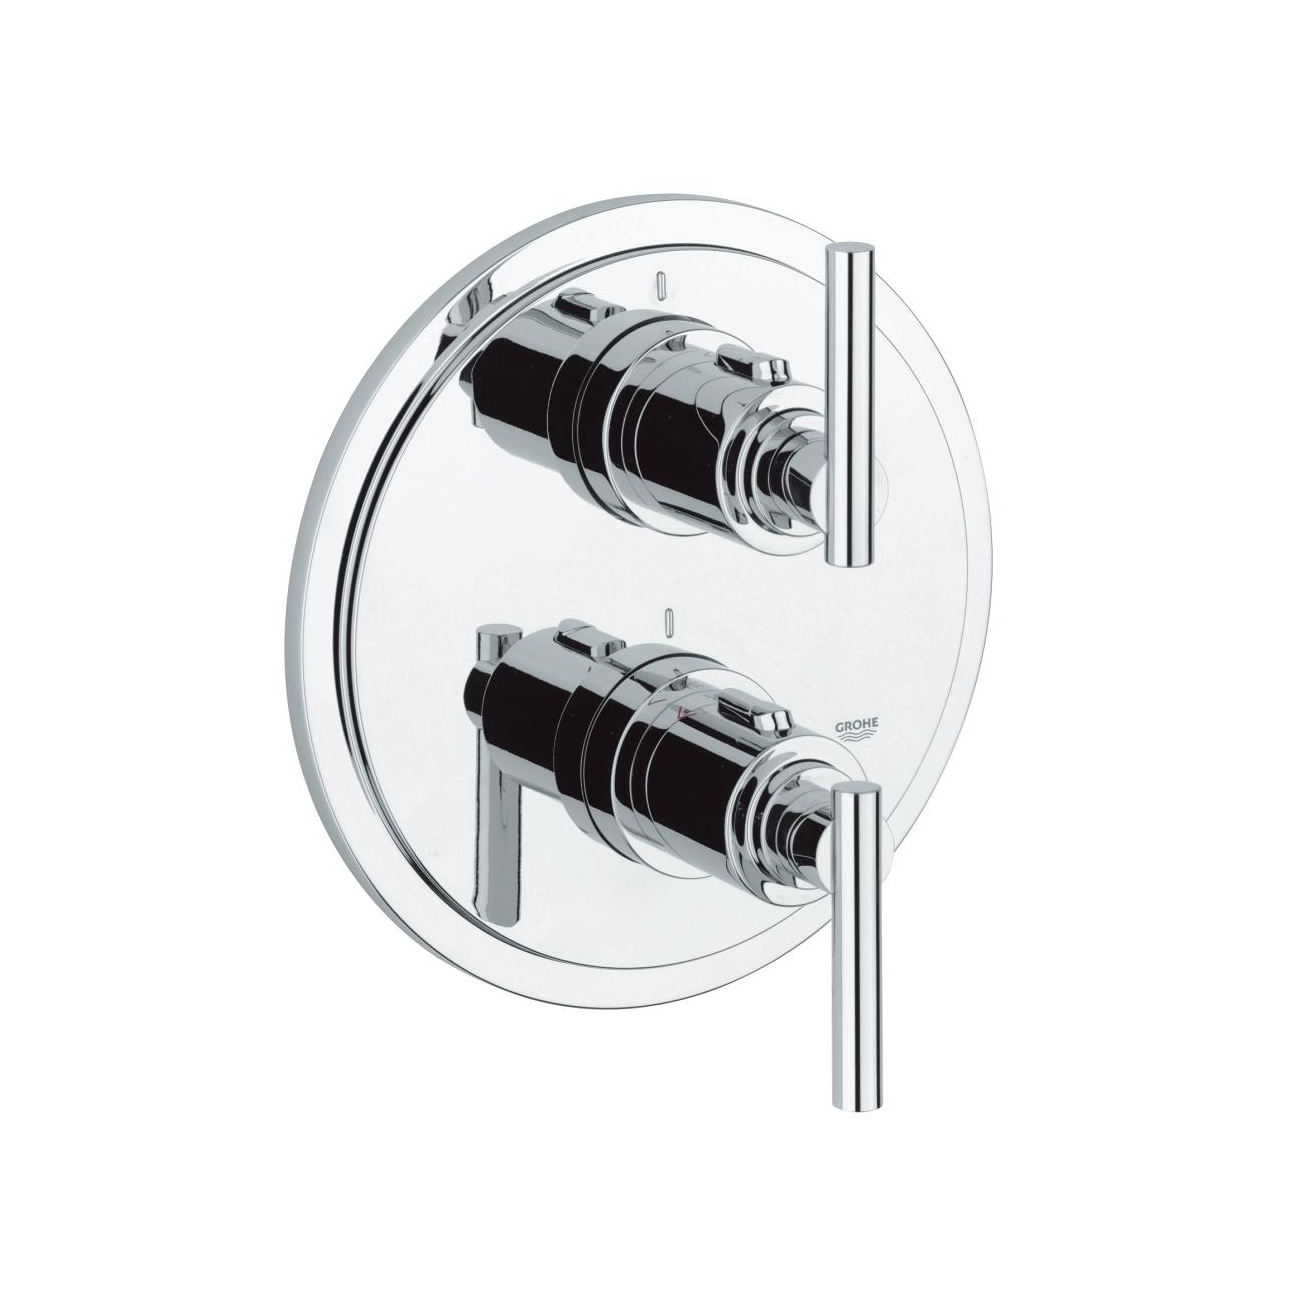 GROHE ATRIO J Thermostatic shower mixer - TattaHome